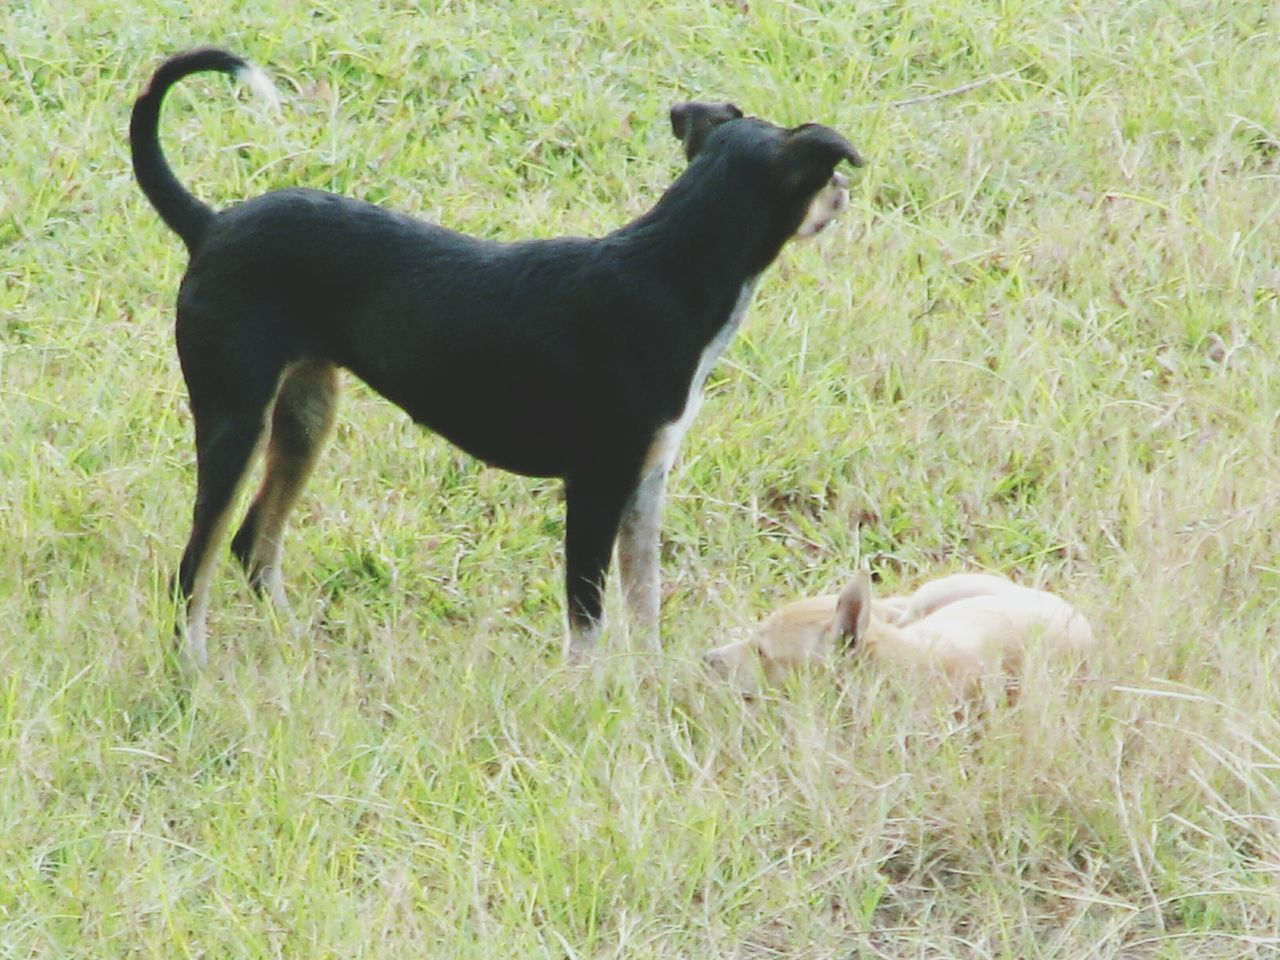 animal themes, grass, domestic animals, field, two animals, no people, mammal, day, pets, outdoors, nature